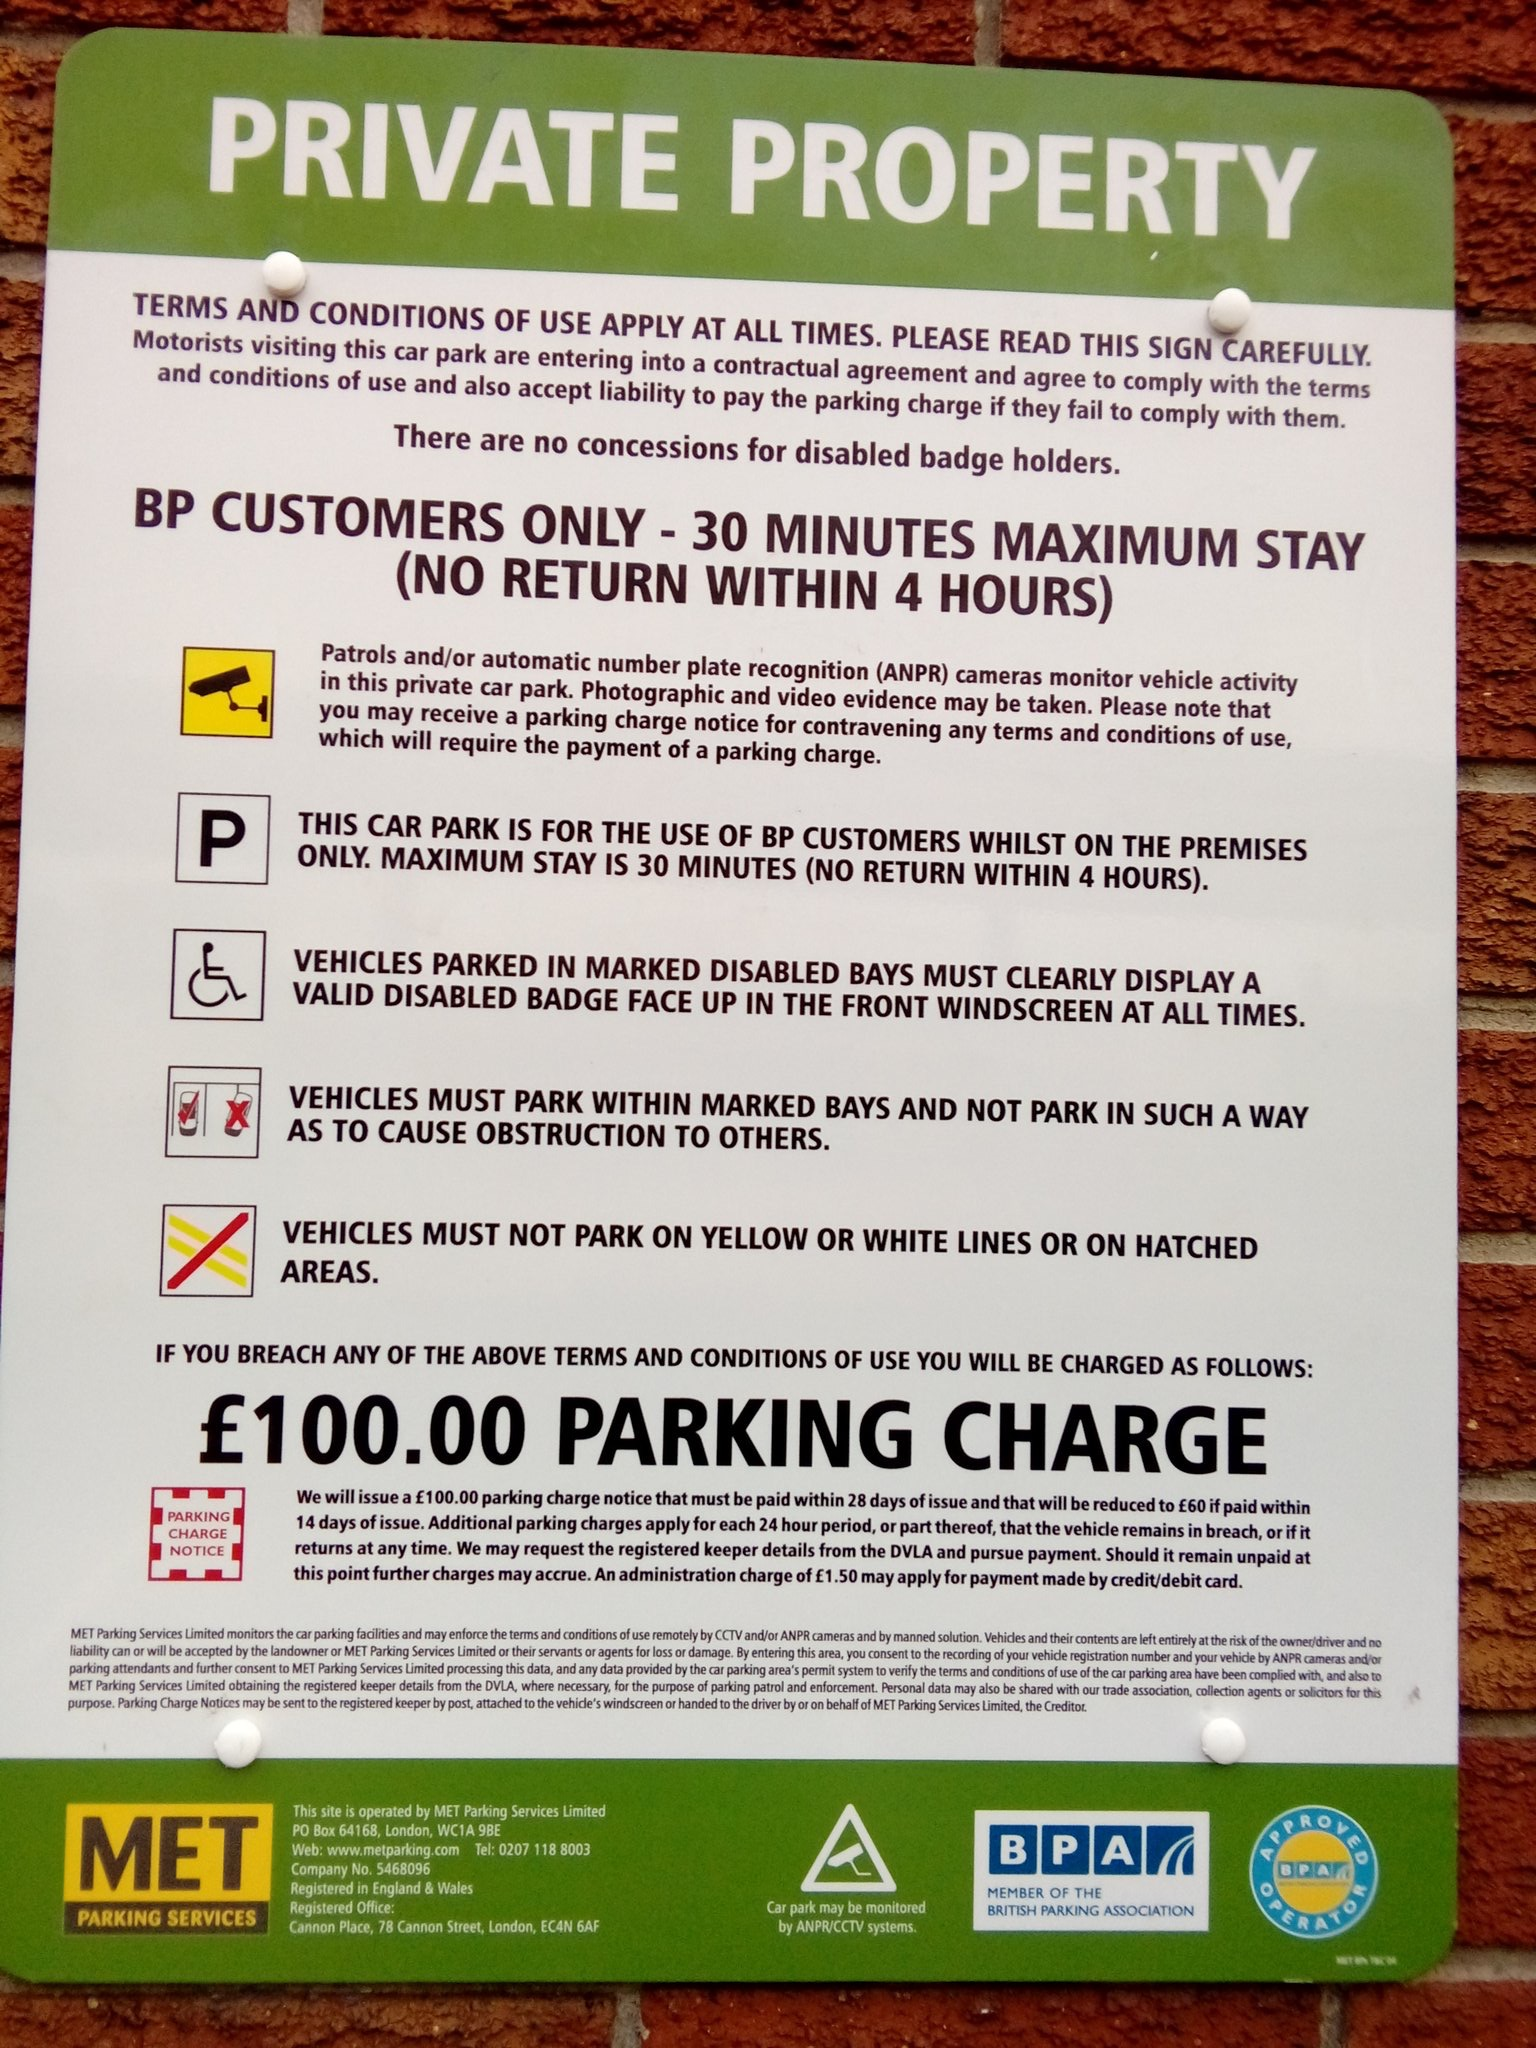 Met Parking Services >> Victory For Common Sense As Bp Backs Down Over 100 Fine Inside